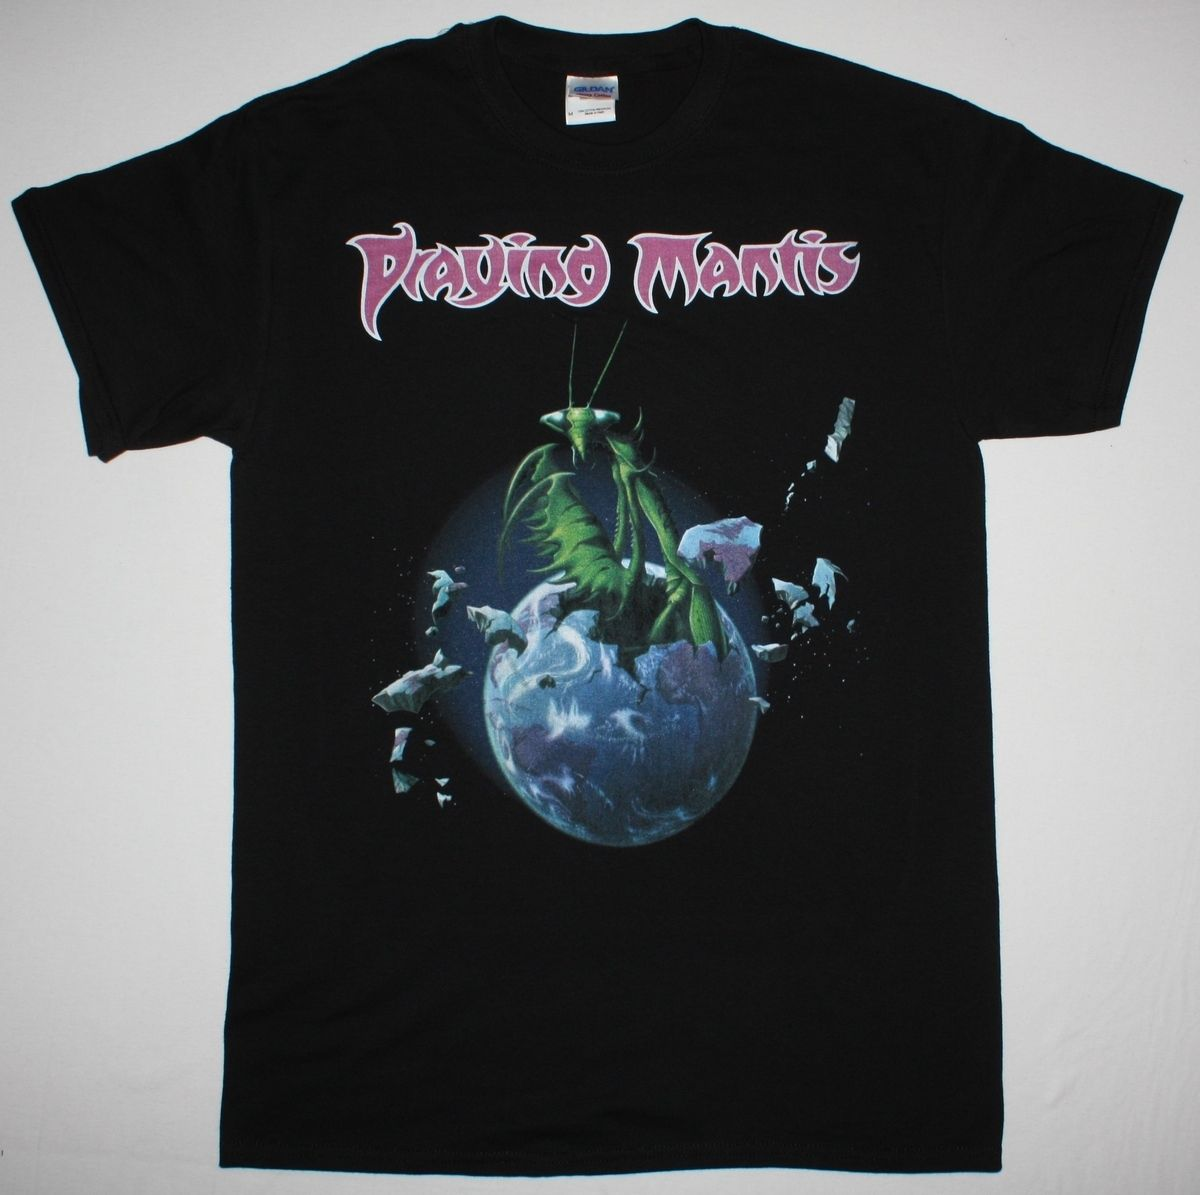 T-shirts Confident Praying Mantis S/t 80 Nwobhm Budgie Samson Aor Angel Witch New Black T-shirt 100 % Cotton T Shirt For Boy Loose Top Tee Complete In Specifications Tops & Tees